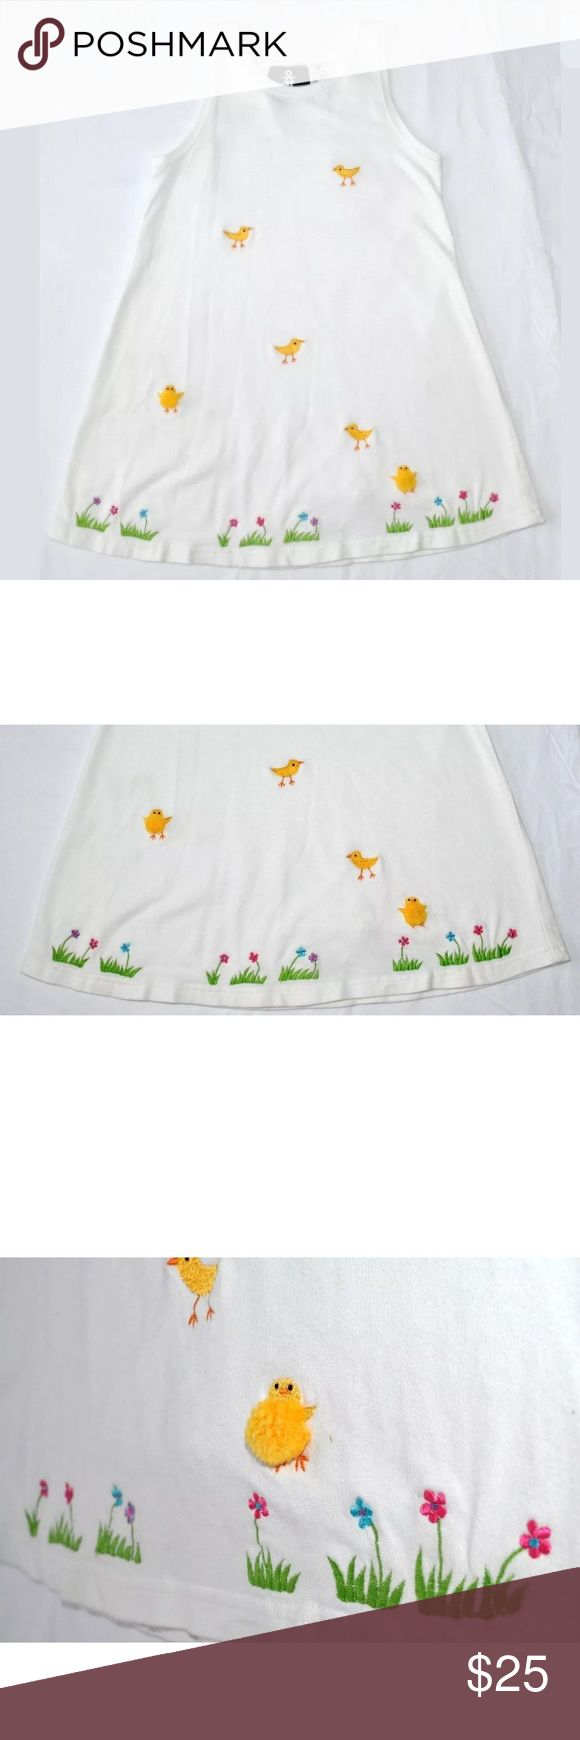 """Michael Simon Girl White Spring Easter Sundress Michael Simon Girl 6 6x White Spring Easter Yellow Puffy Embroidered Chicks  Pullover Sundress Dress  Spring Summer Fall  Girl's Size Extra Small - XS - 6/6X  Measurements: Length from Neck Base to Hem: 25"""" Armpit to Armpit: 13 1/2"""" Neck Circumference: n/a"""" Sleeve Length: none  Fabrics: · 100% cotton Michael Simon Dresses Casual"""